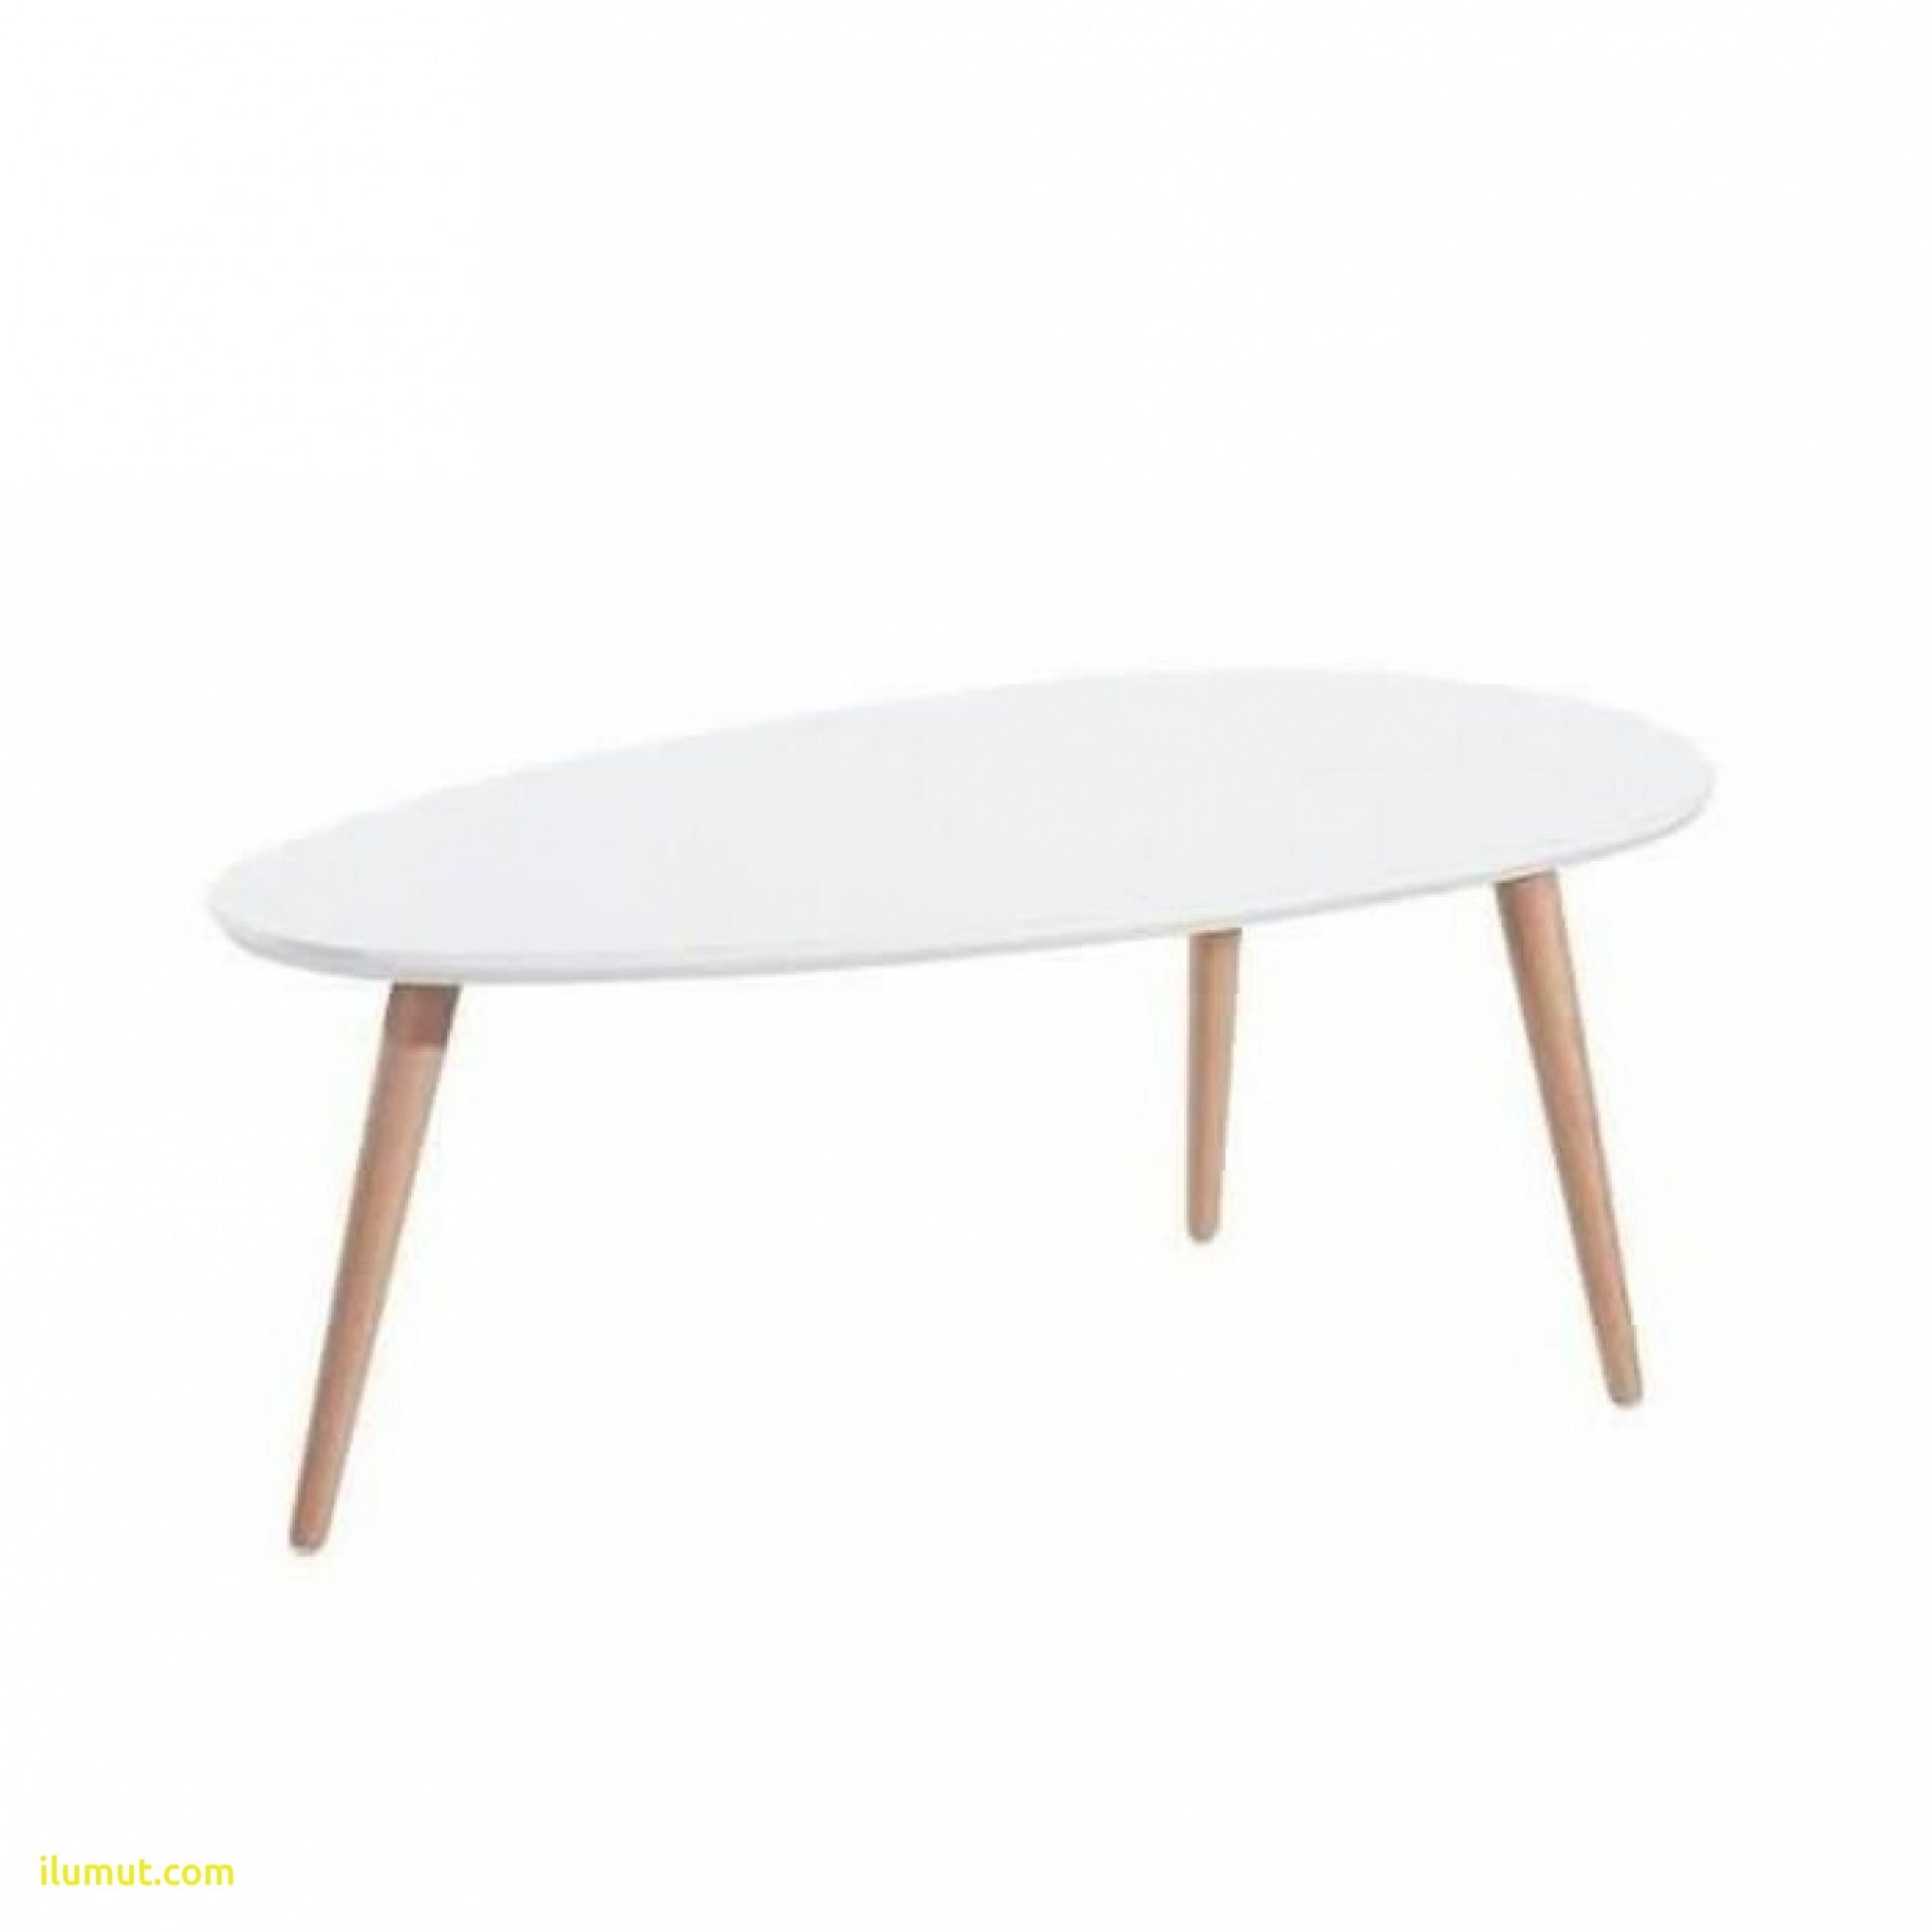 Table Ovale Ikea Table Blanche Affordable Table Blanche Ronde Personnes